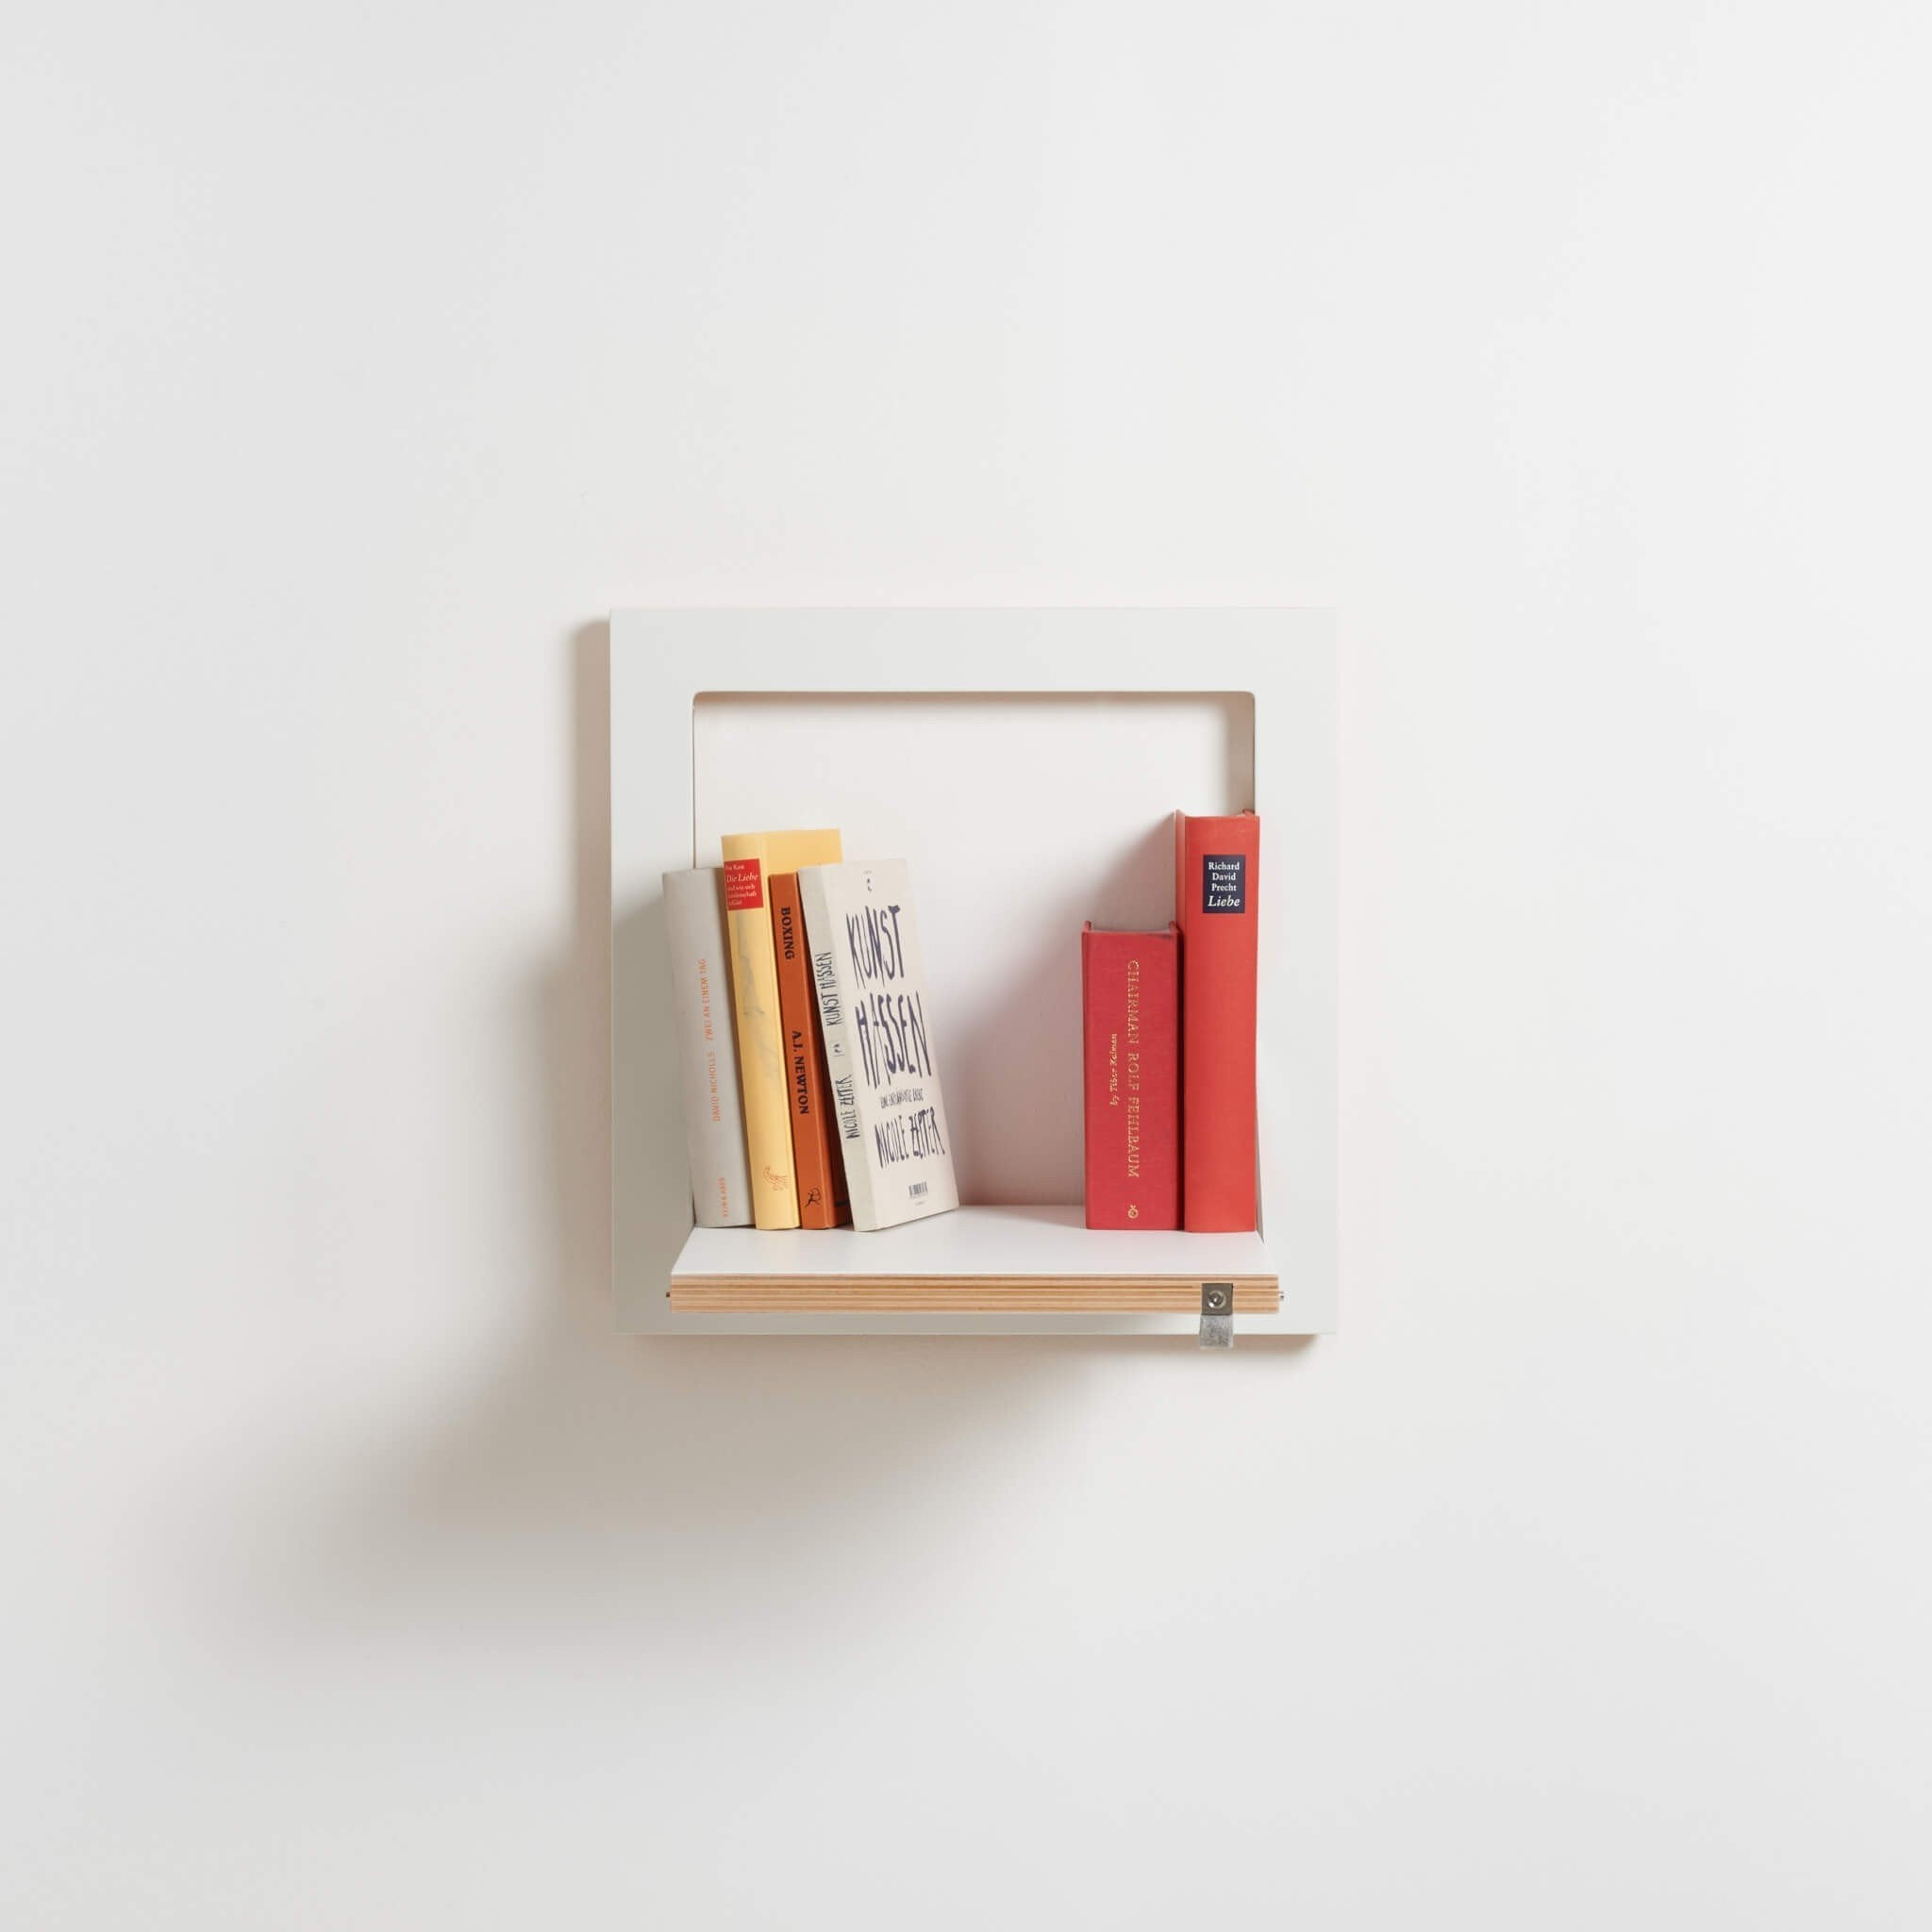 Fläpps Shelf by Ambivalenz